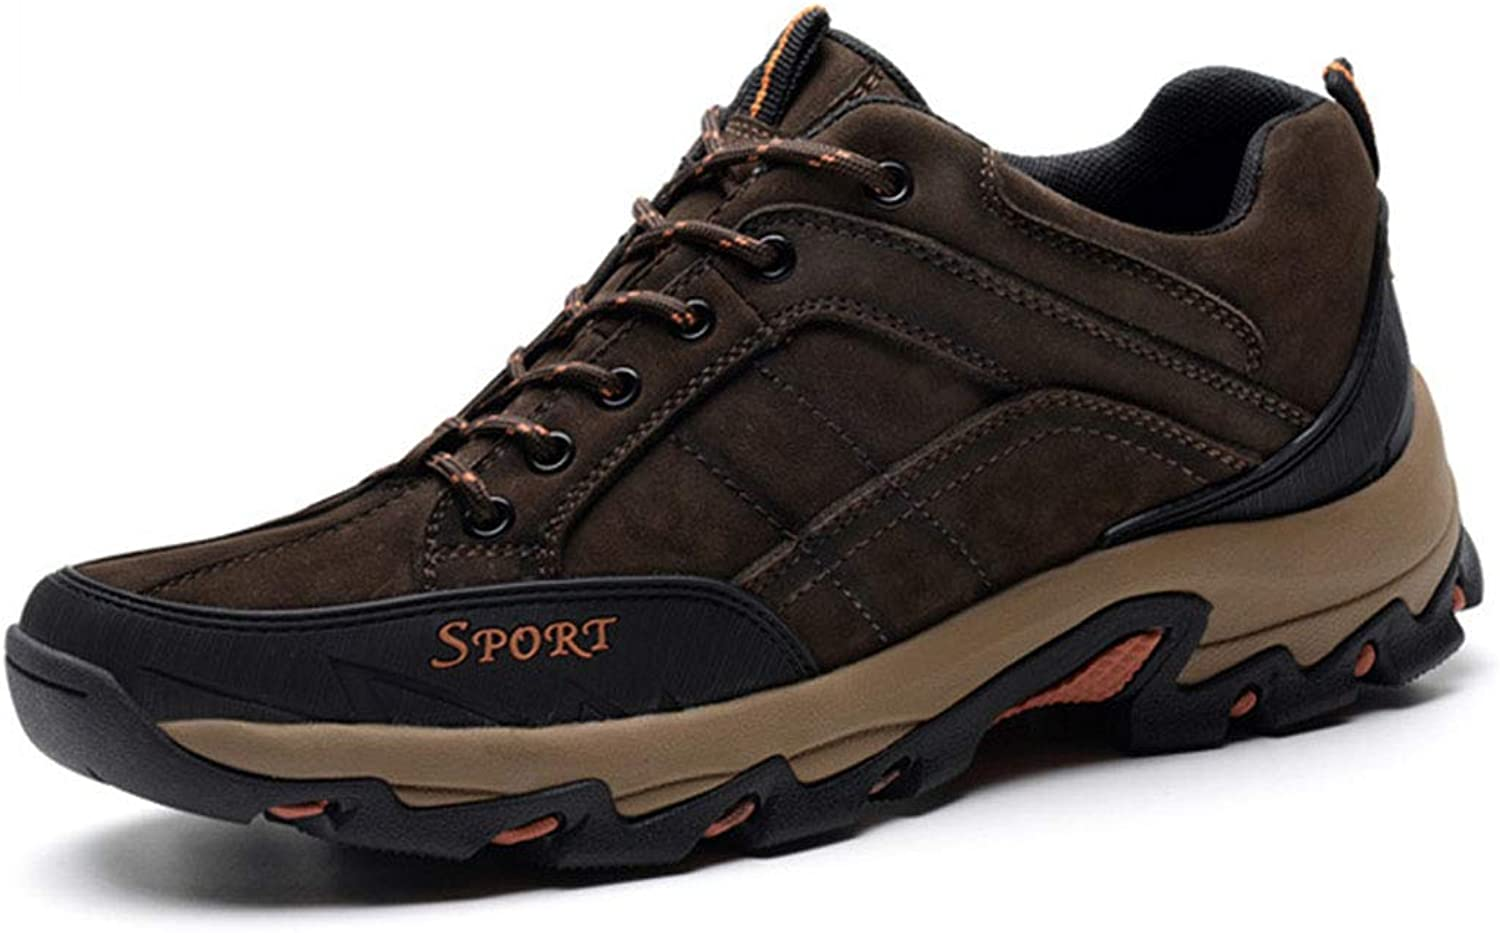 Men Hiking shoes Leather Scrub Low Boots shoes lace up Warm Non-Slip Large Size Sports shoes Winter Outdoor